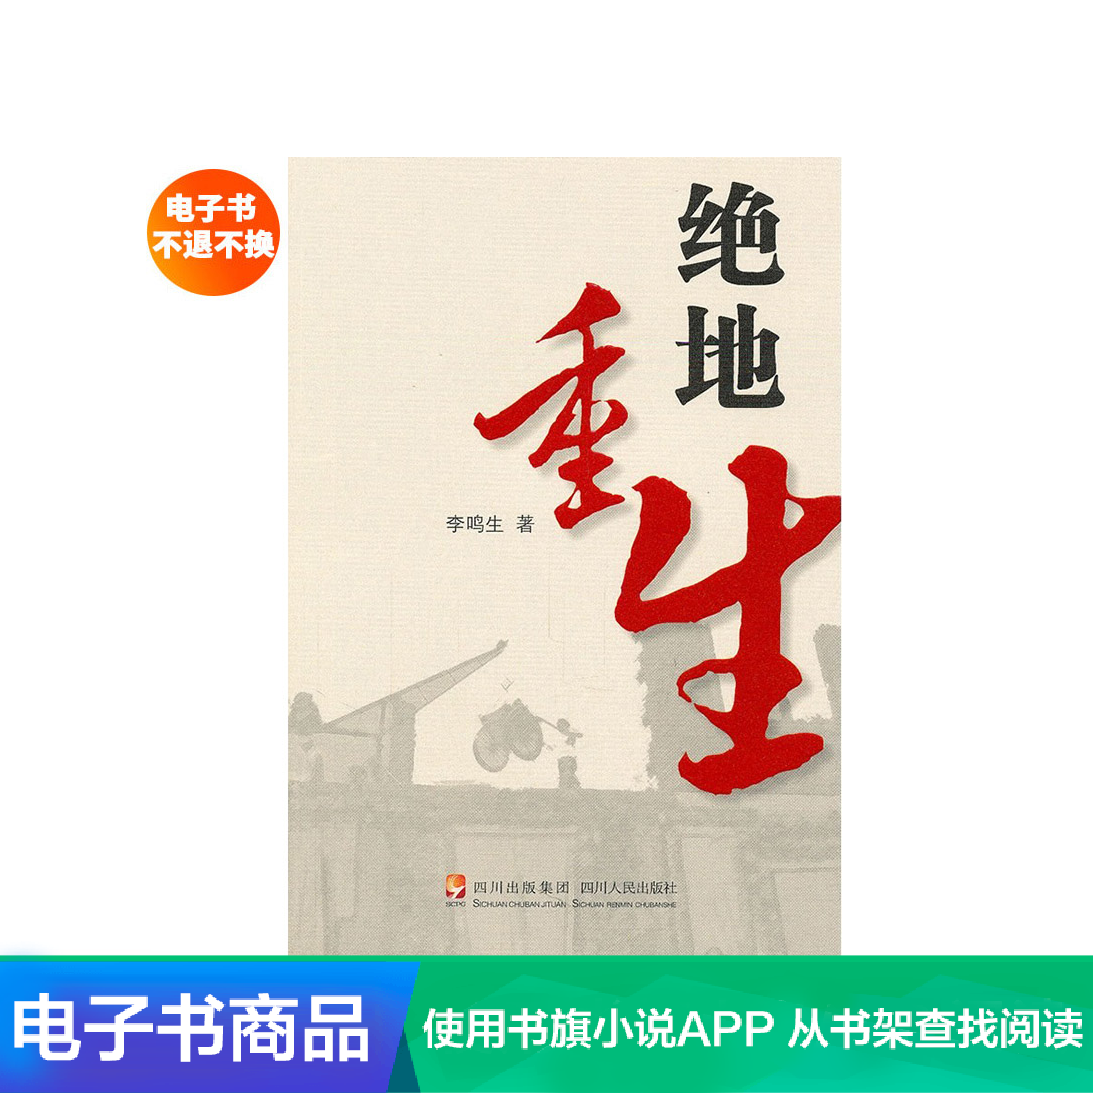 Jedi rebirth by Li Mingsheng: e-book reading of documentary reportage on post Wenchuan Earthquake Reconstruction